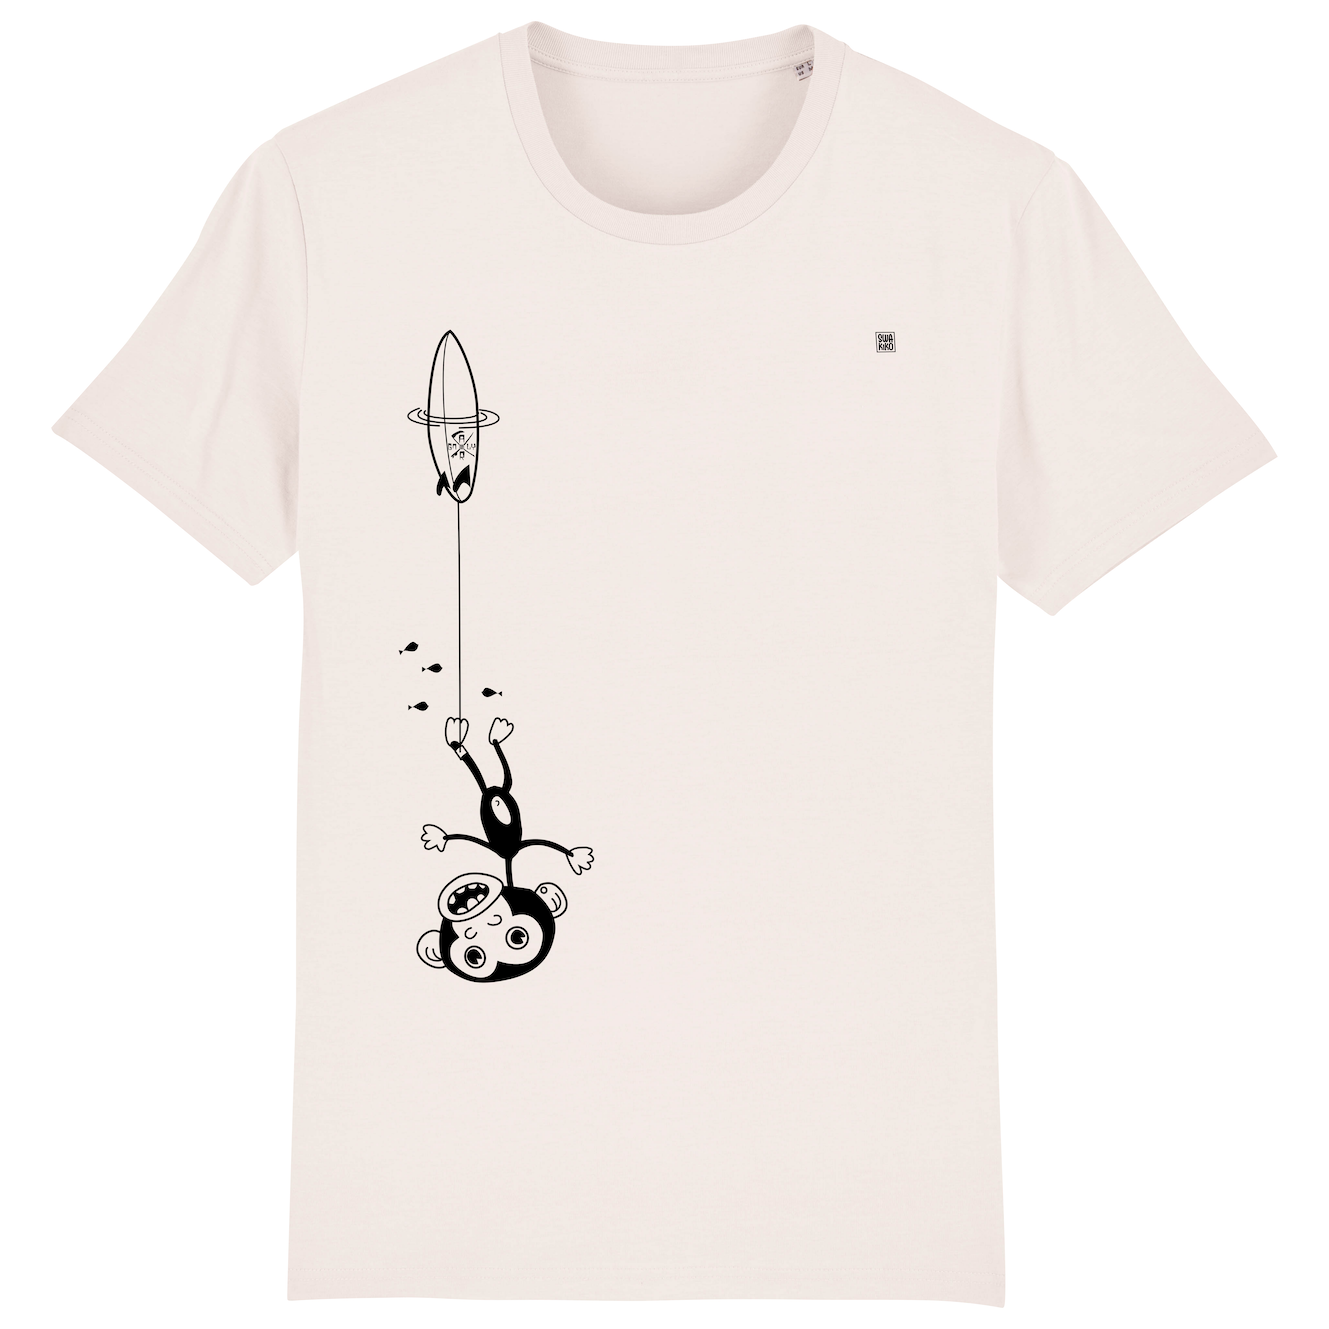 Surf t-shirt men white, Kook Downunder